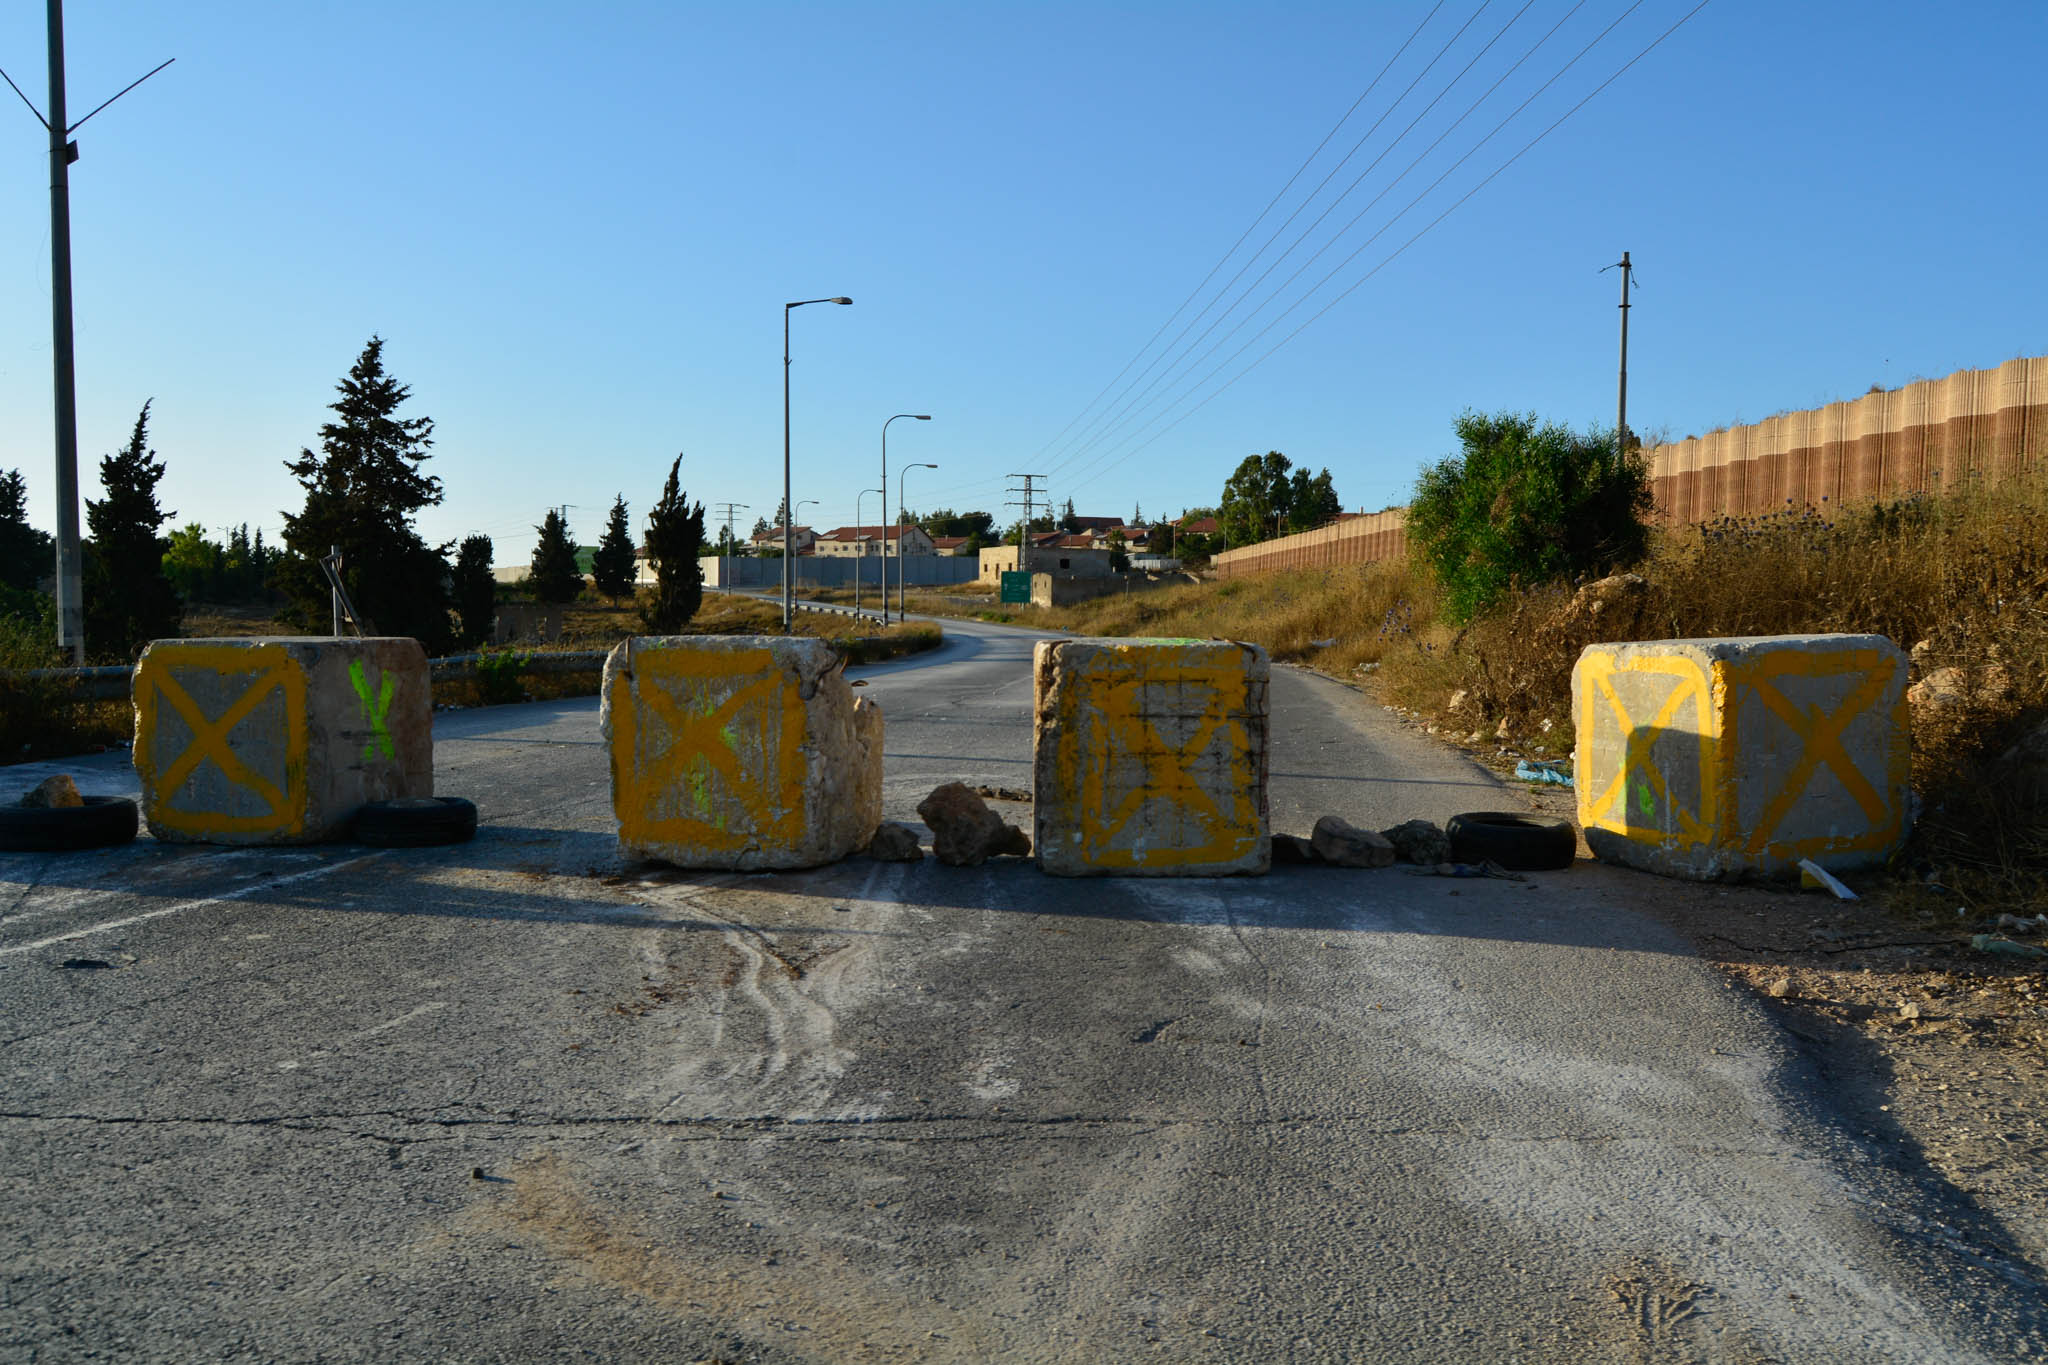 This the main road from Ramallah to Nablus. The previous day it was open and on this day it was closed for no apparent reason. Residents have to find alternative routes.